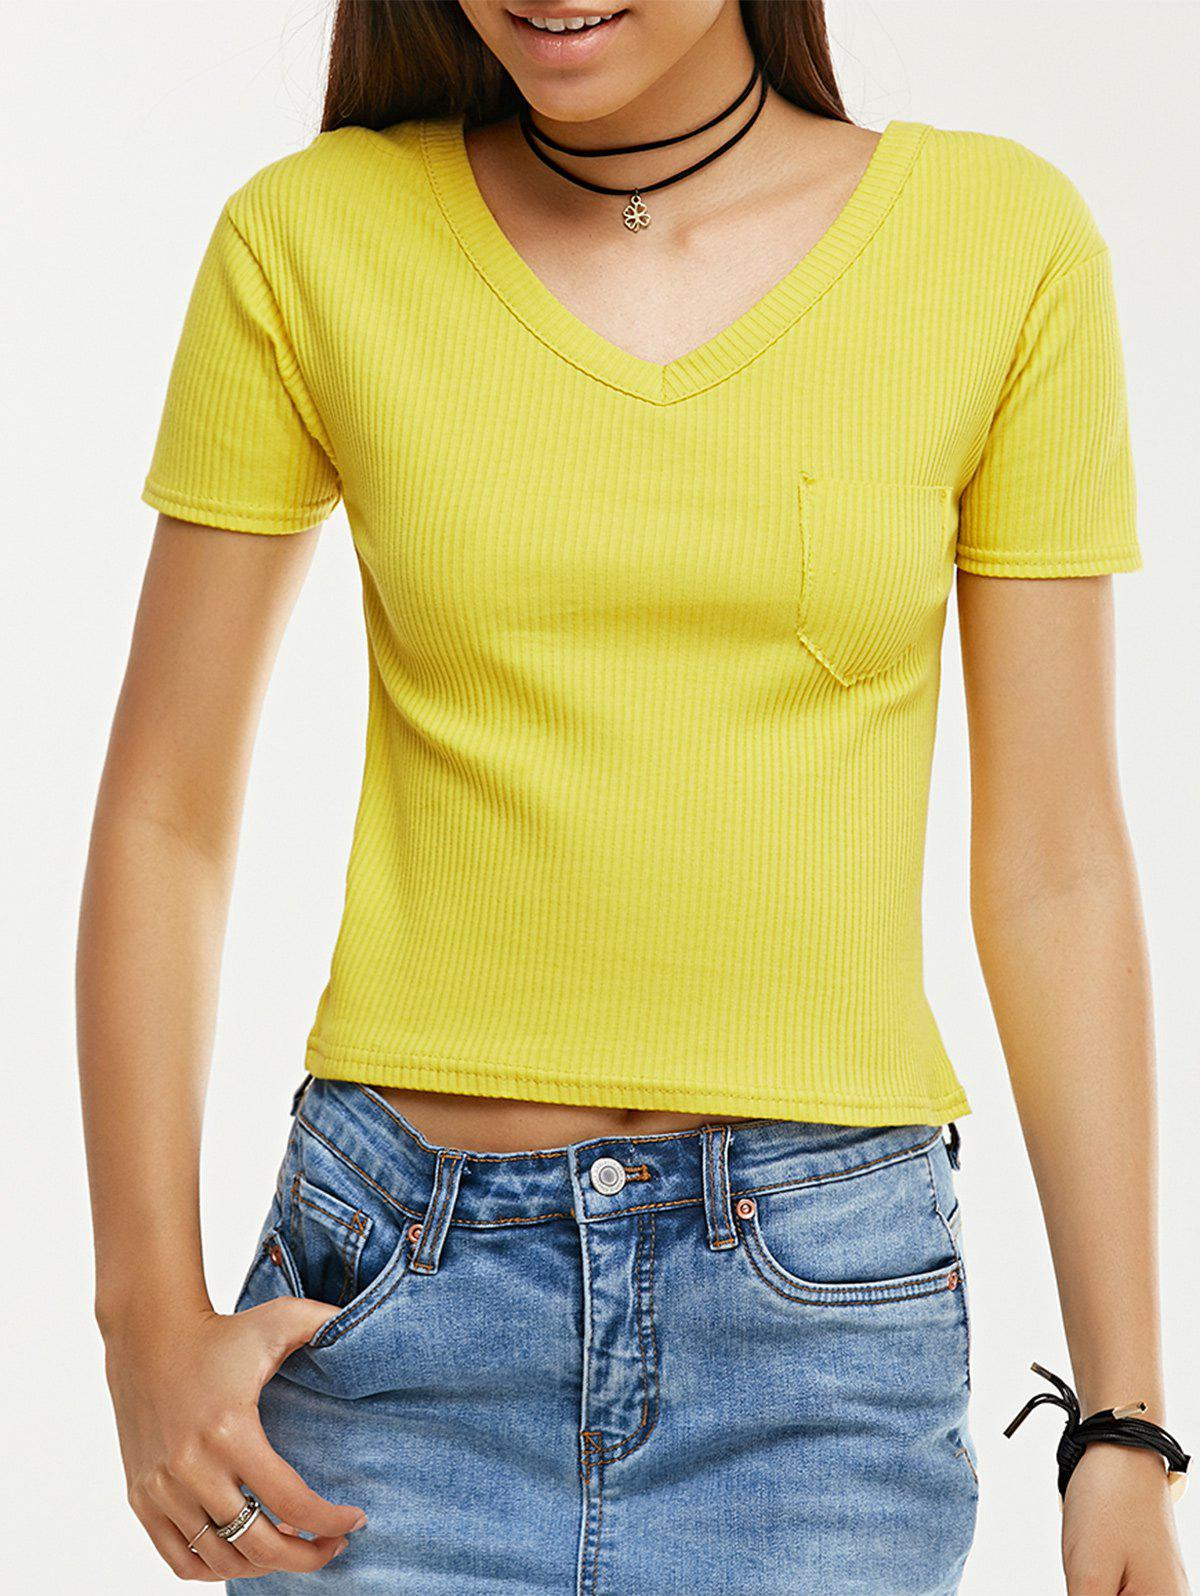 V-Neck Short Sleeve Ribbed Crop TopWomen<br><br><br>Size: ONE SIZE<br>Color: YELLOW